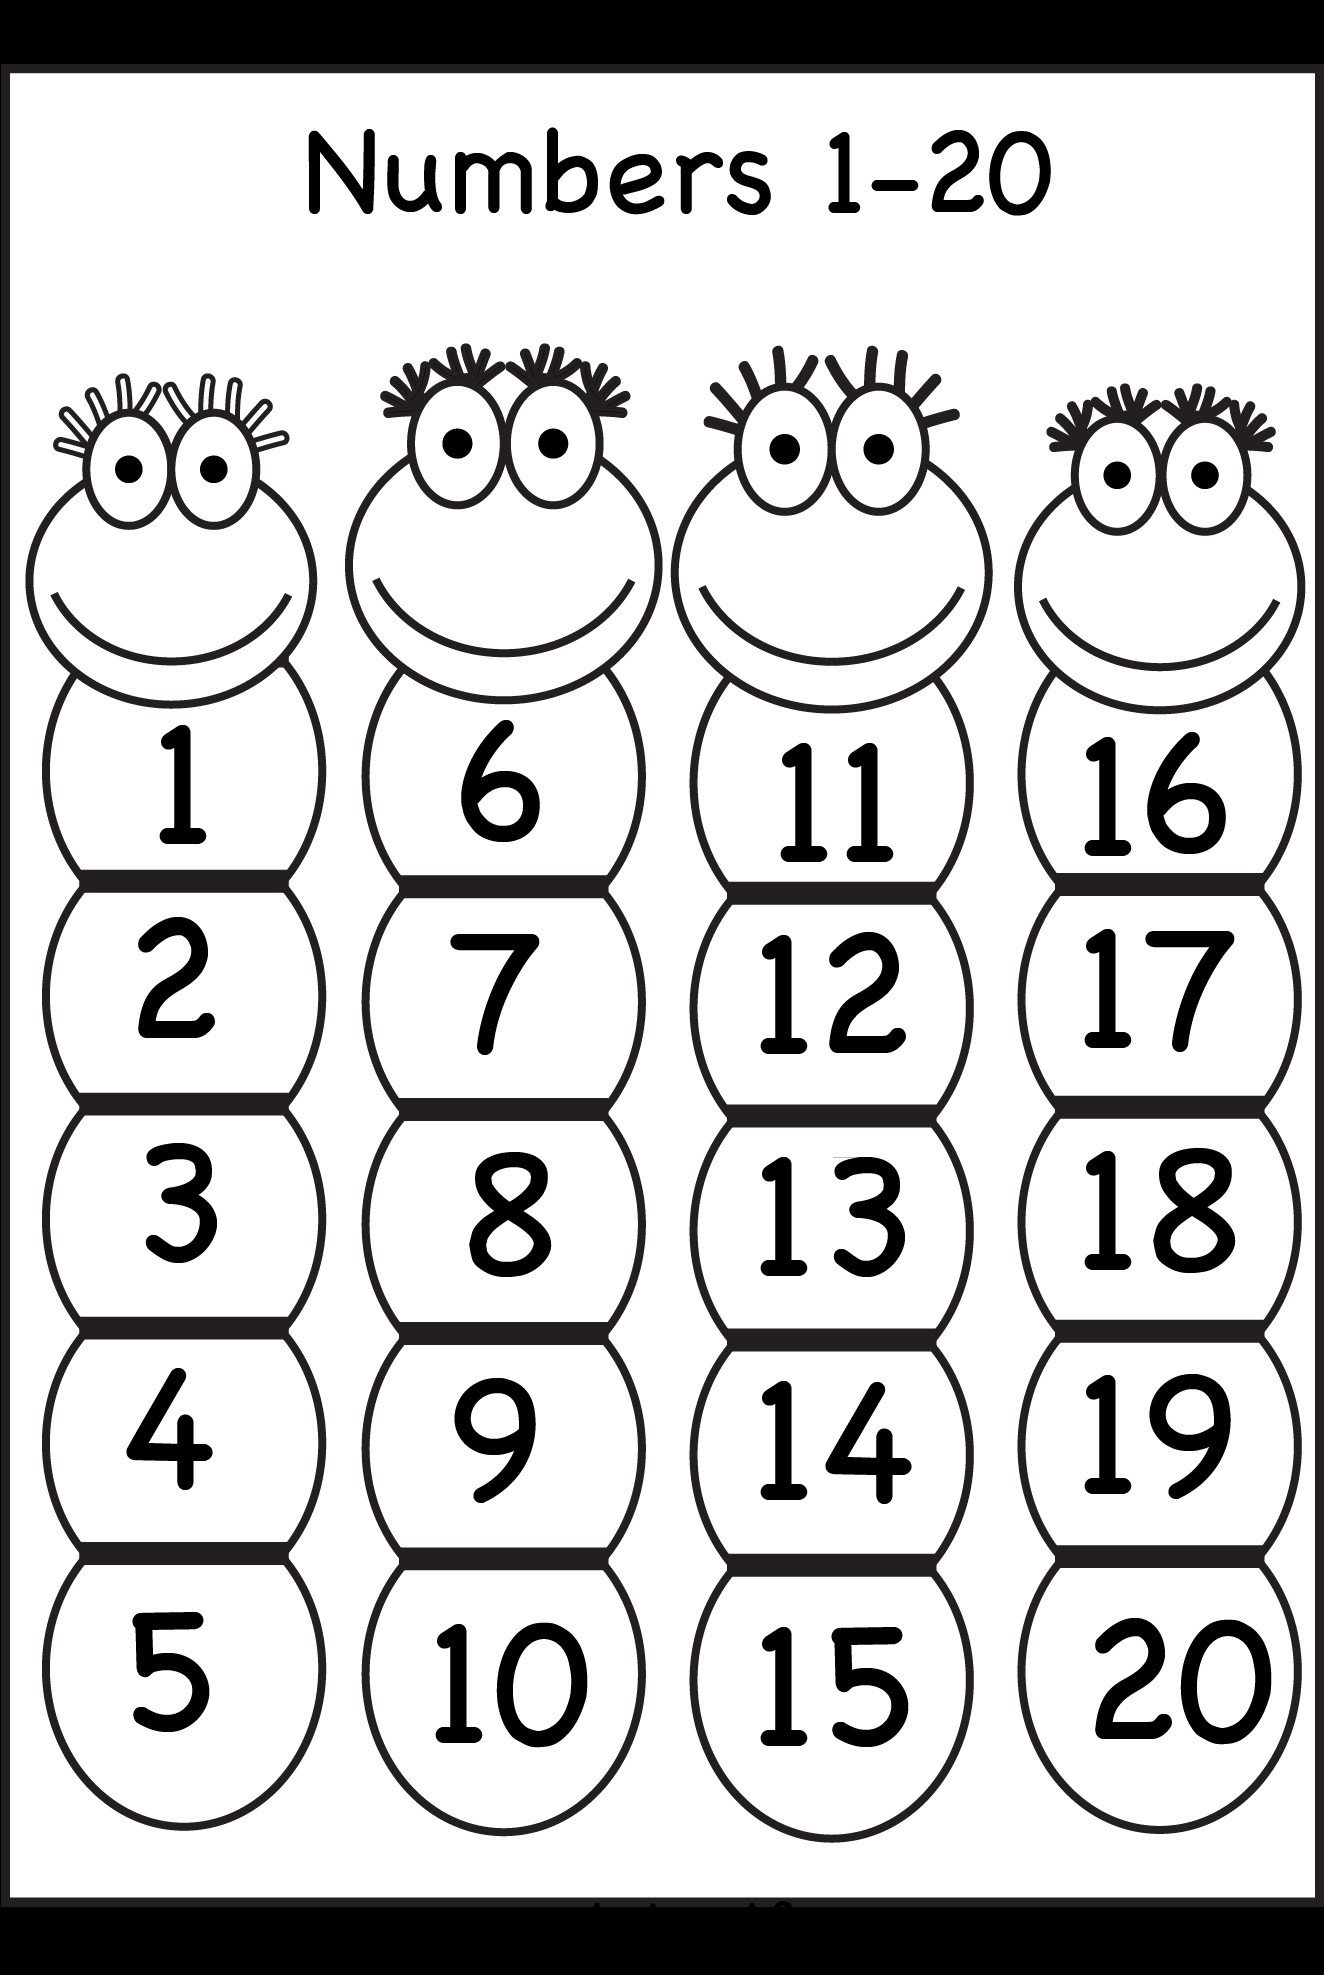 Numbers 1 30 Worksheets Printable Preschool Worksheets 1 20 Reading Counting Numbers